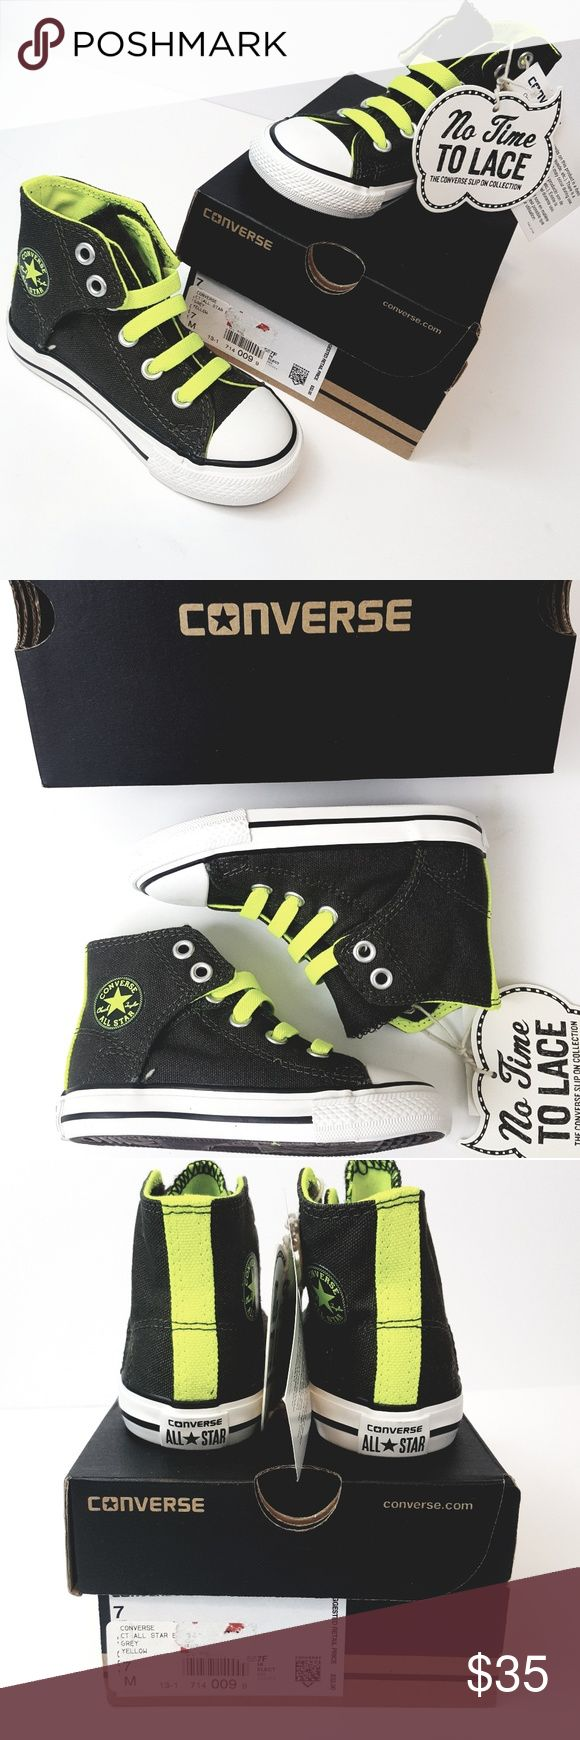 Converse All Star NIB No Time To Lace size 7 Brand new never worn high tops.  Color is a dark grey almost black and neon yellow. Converse Shoes Sneakers